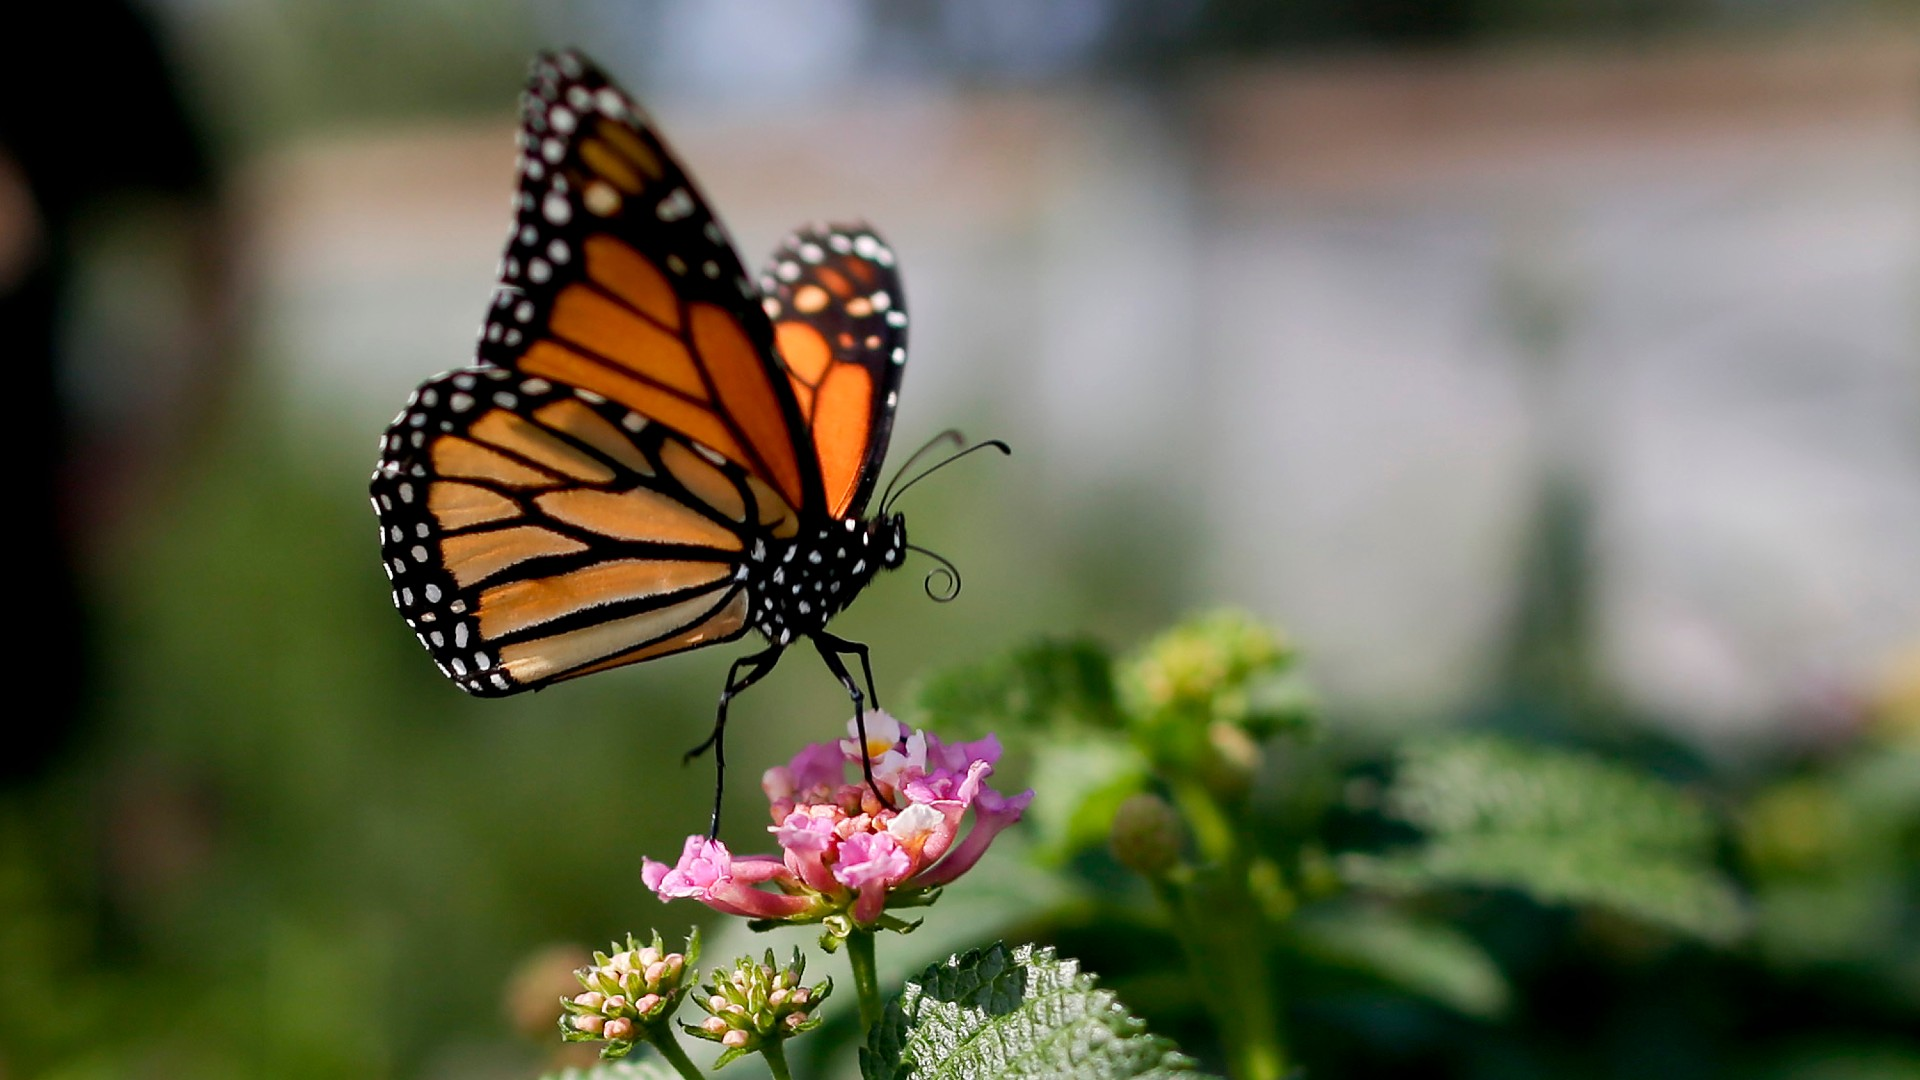 This Aug. 19, 2015, file photo, shows a monarch butterfly in Vista, Calif. The number of western monarch butterflies wintering along the California coast has plummeted to a new record low, putting the orange-and-black insects closer to extinction, researchers announced Tuesday, Jan. 19, 2021. A recent count by the Xerces Society recorded fewer than 2,000 butterflies, a massive decline from the millions of monarchs that in 1980s clustered in trees from Marin County to San Diego County. (AP Photo/Gregory Bull, File)